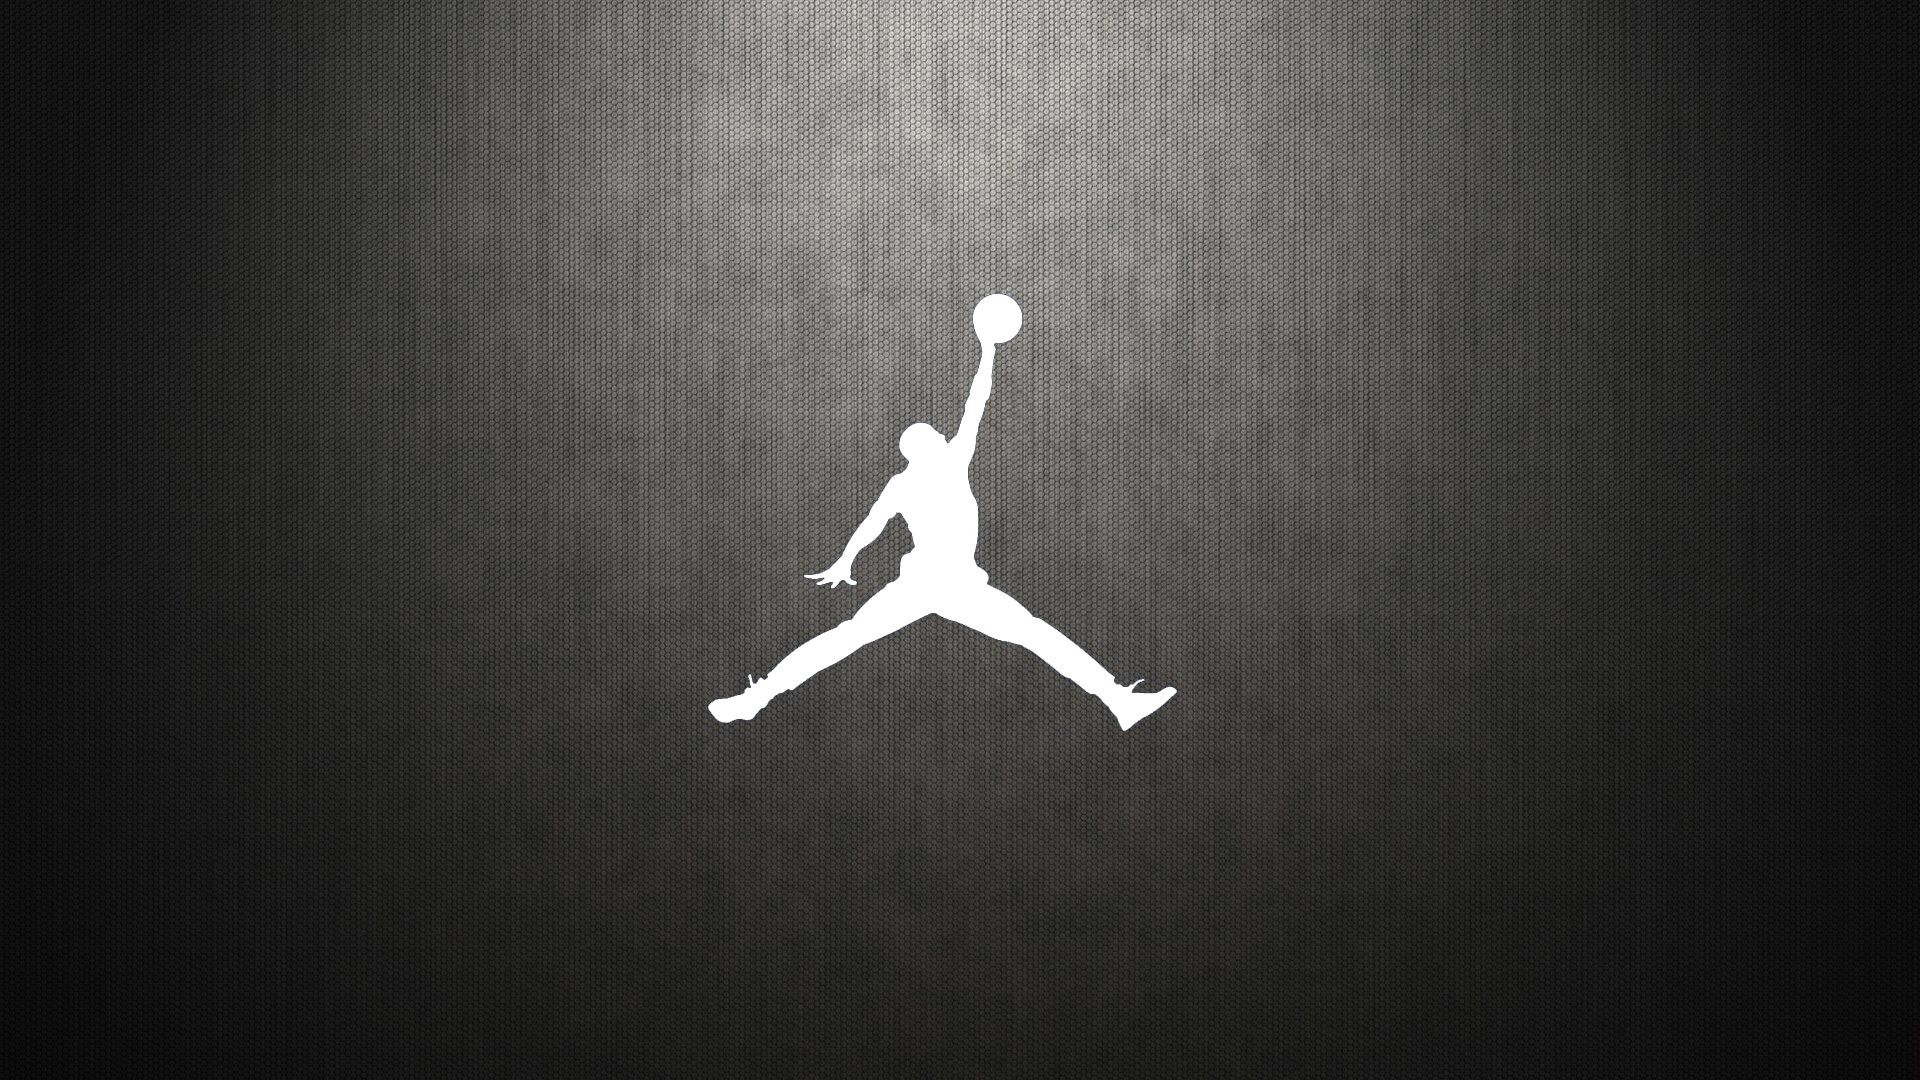 Michael Jordan Black And White Wallpaper For Android Ihb Jordan Logo Wallpaper Logo Wallpaper Hd Basketball Wallpaper